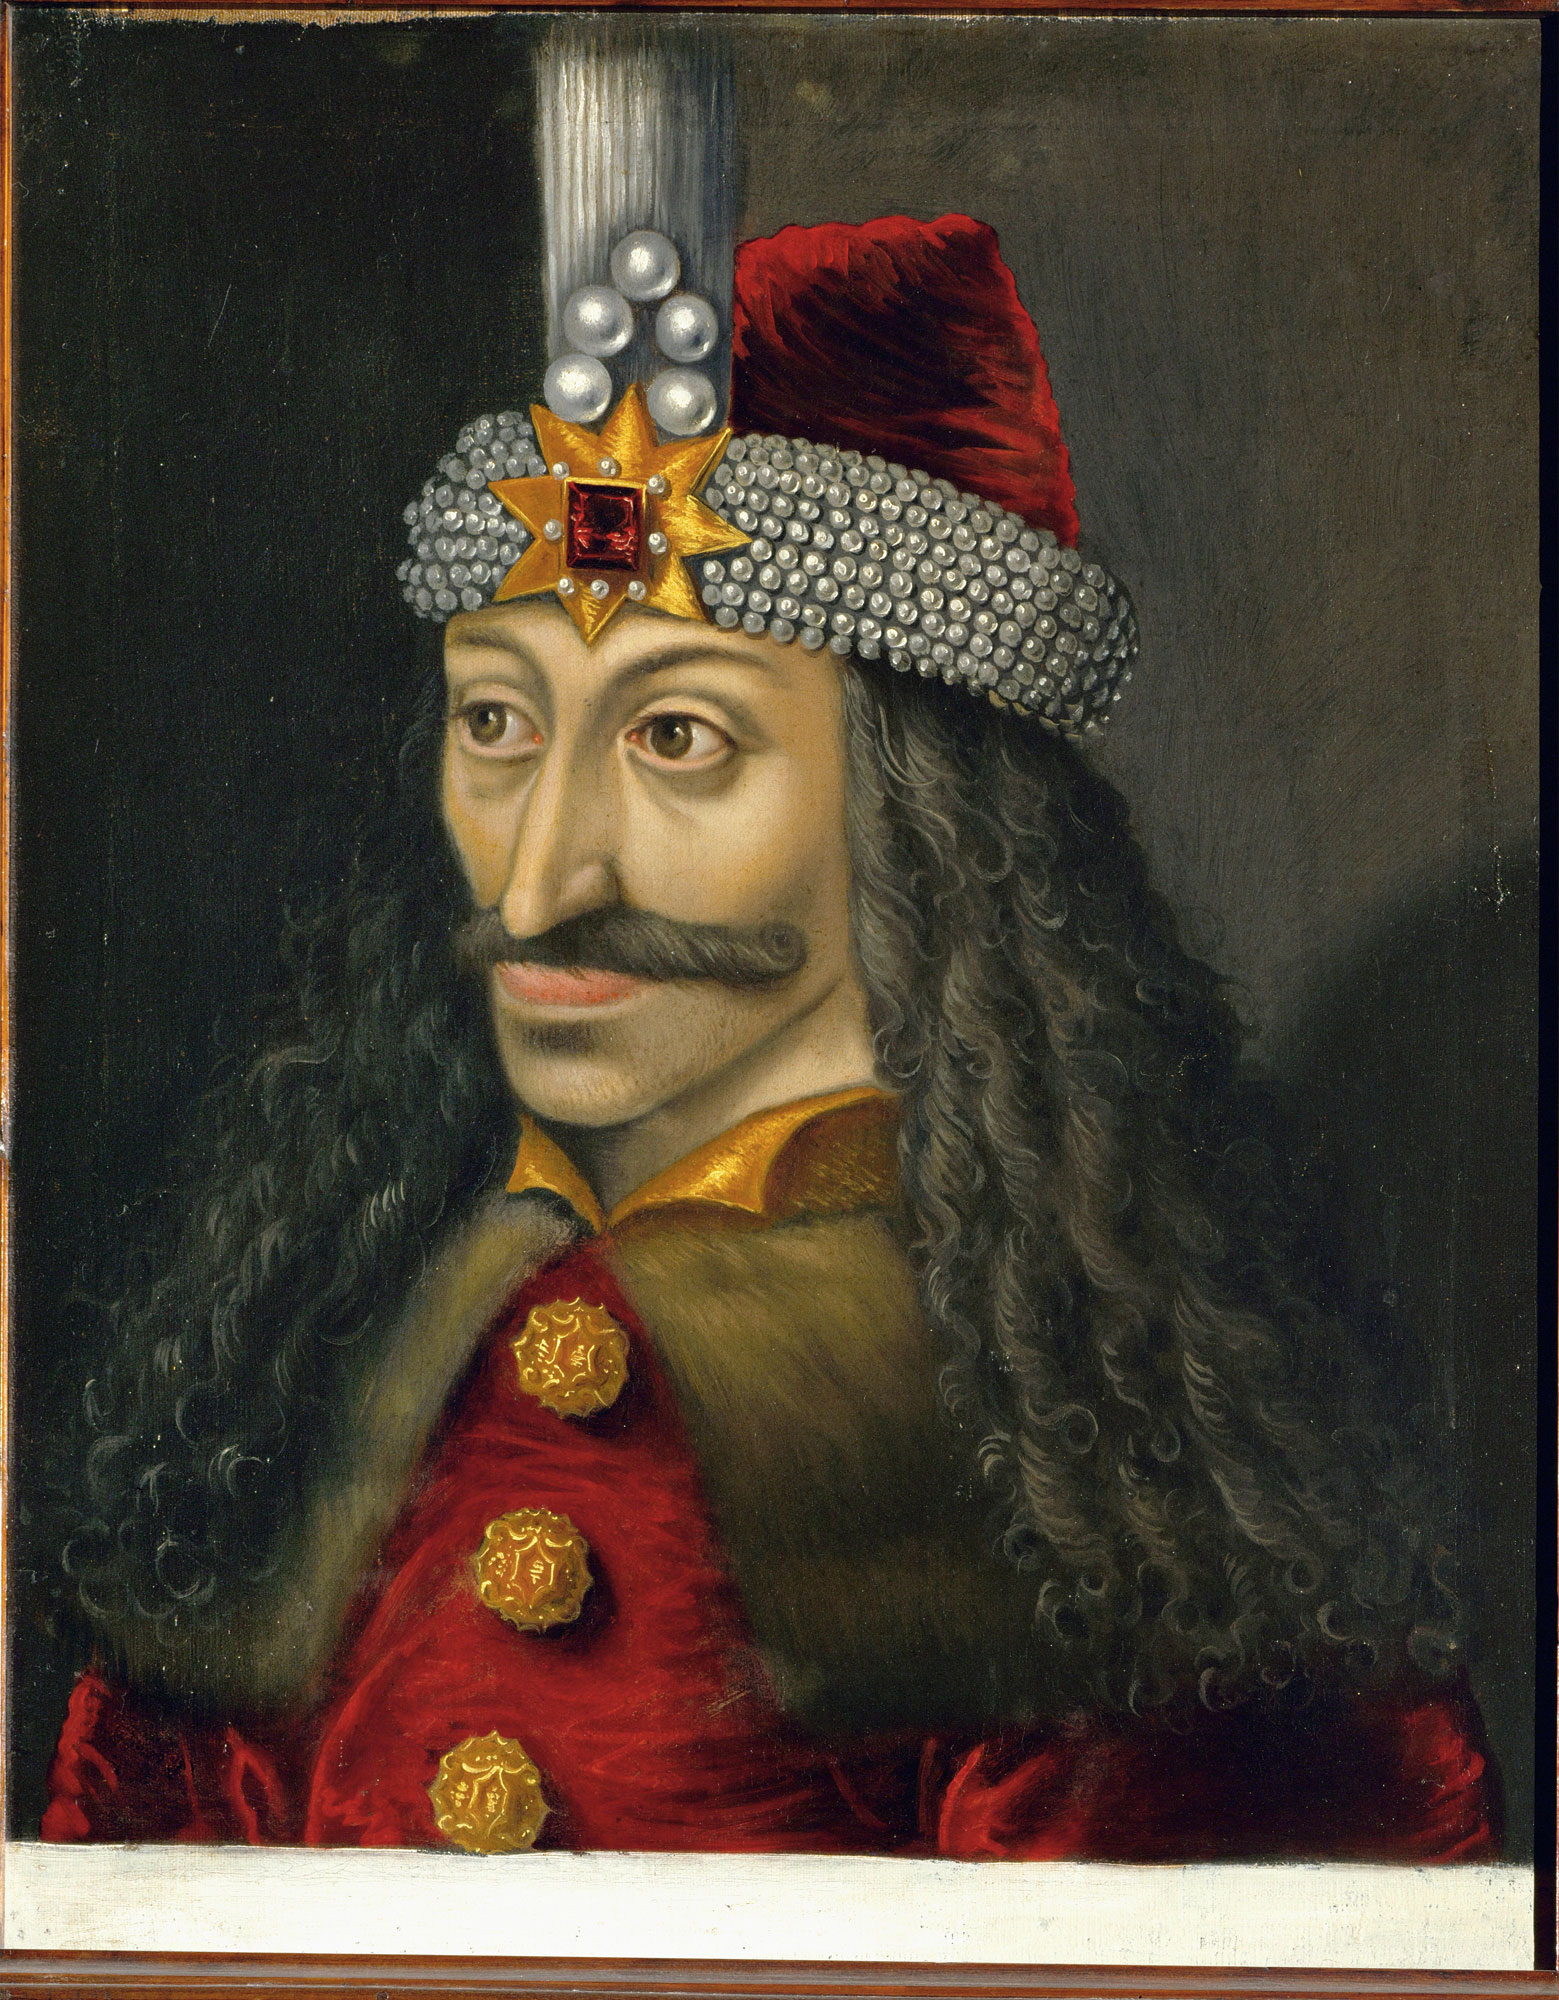 15th century portrait of Vlad III, Prince of Wallachia